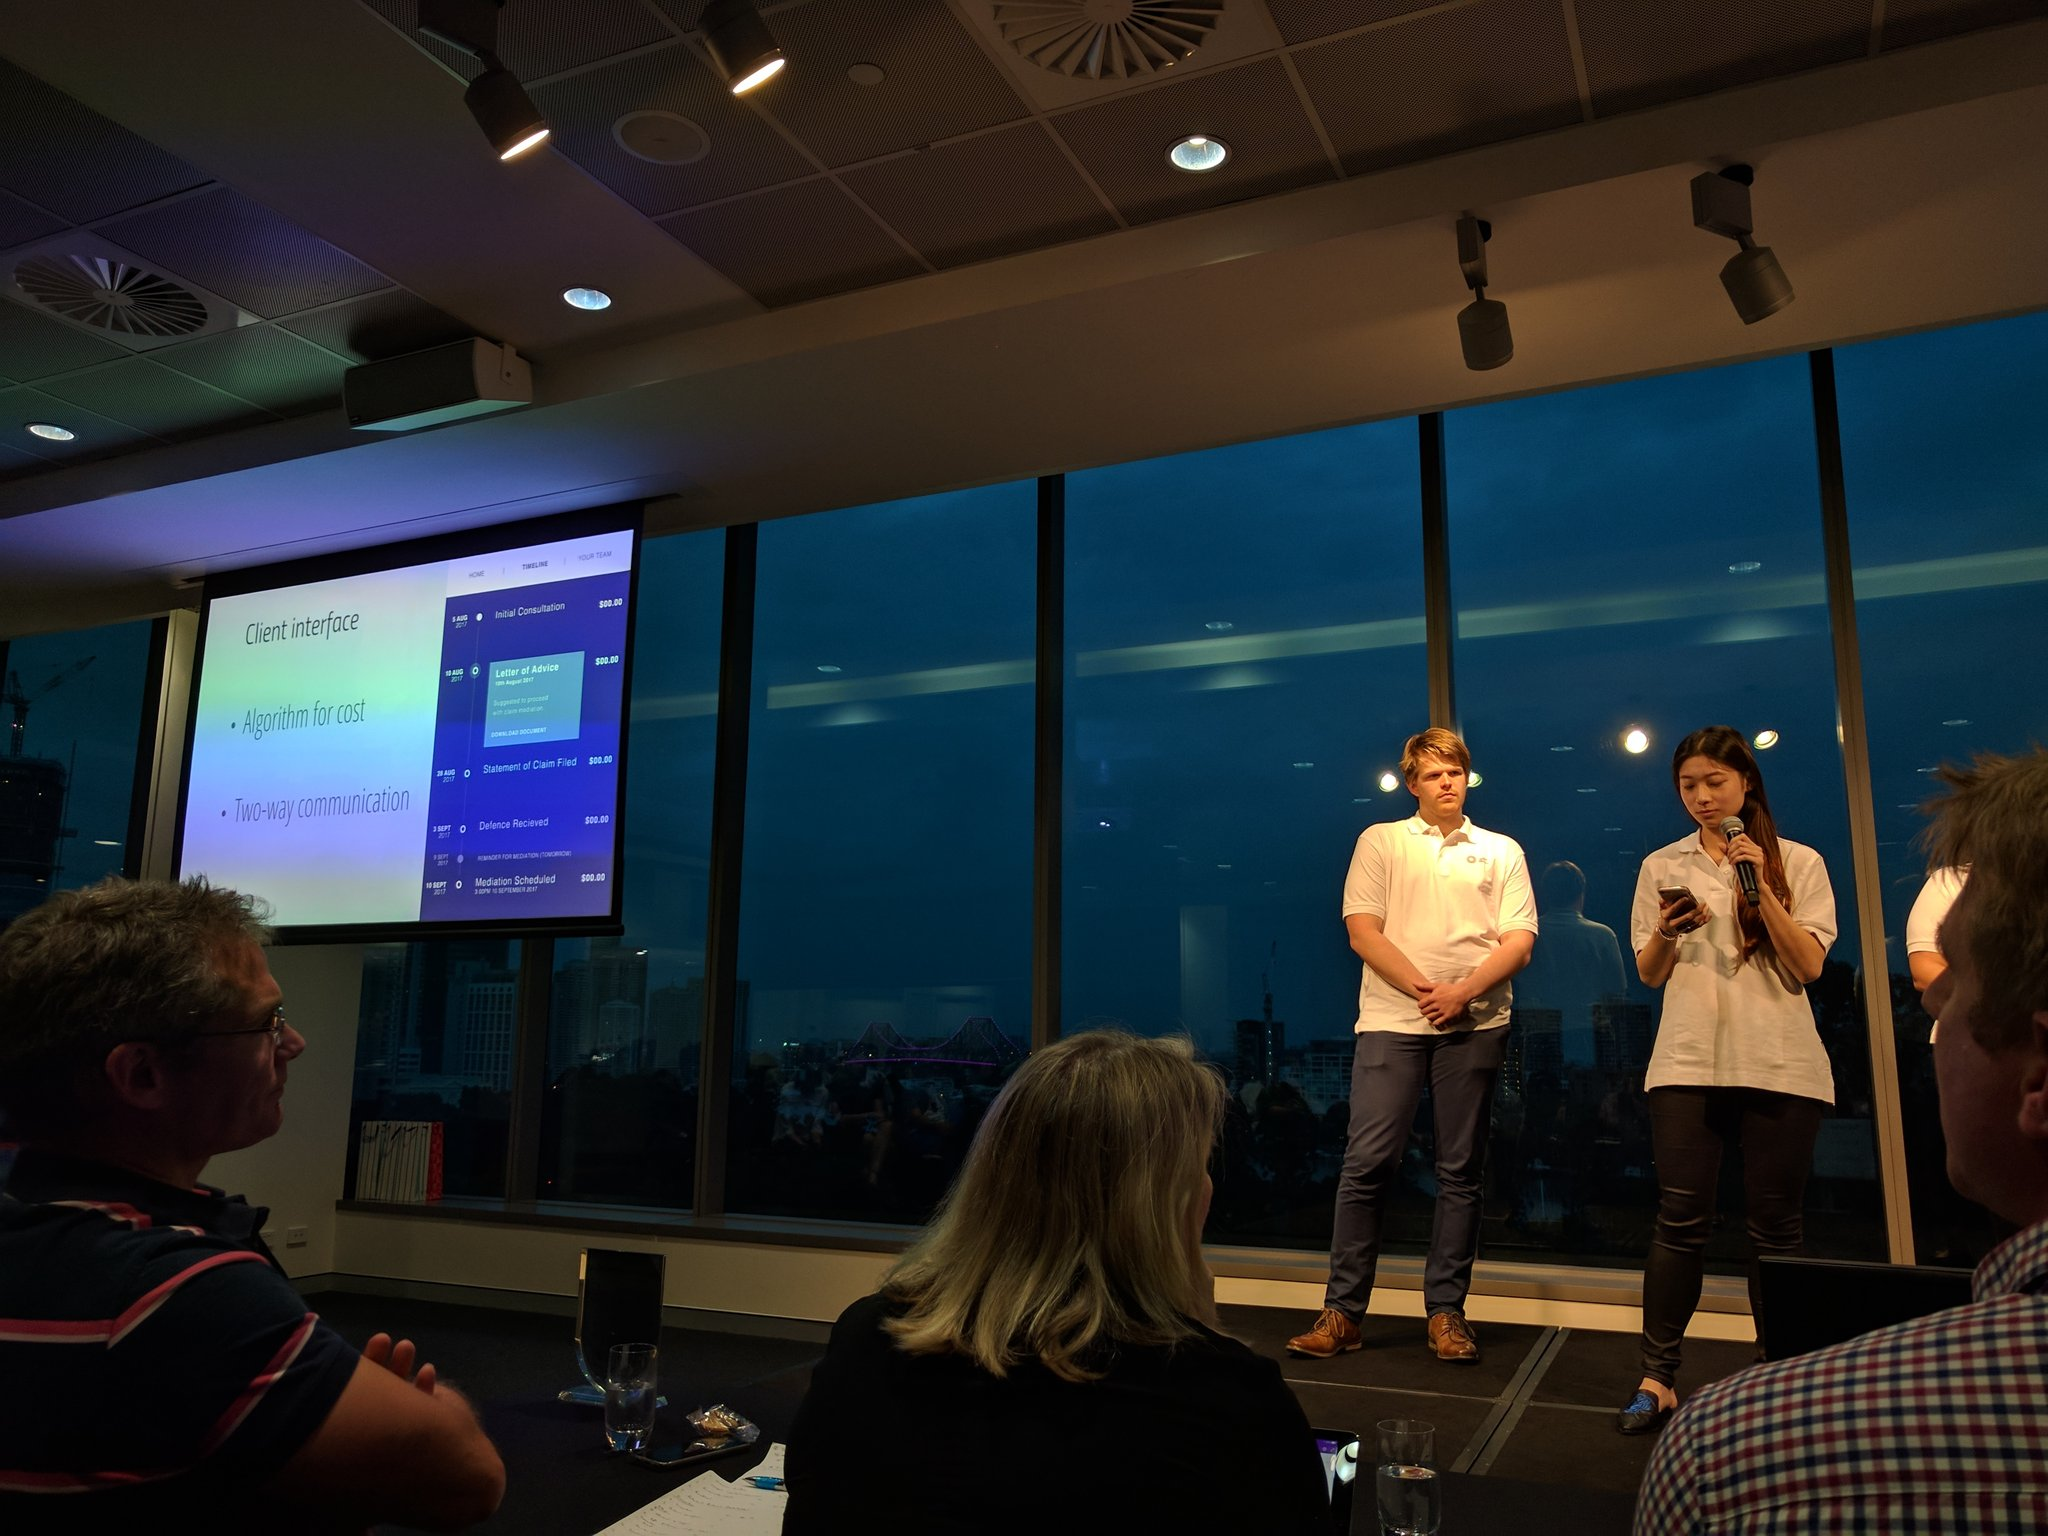 InsideOut: matter transparency for clients, ease for lawyers #disruptinglaw @Legal_Forecast @QUTStarters @QUTfoundry @HSFlegal https://t.co/BaJEKWNeiY